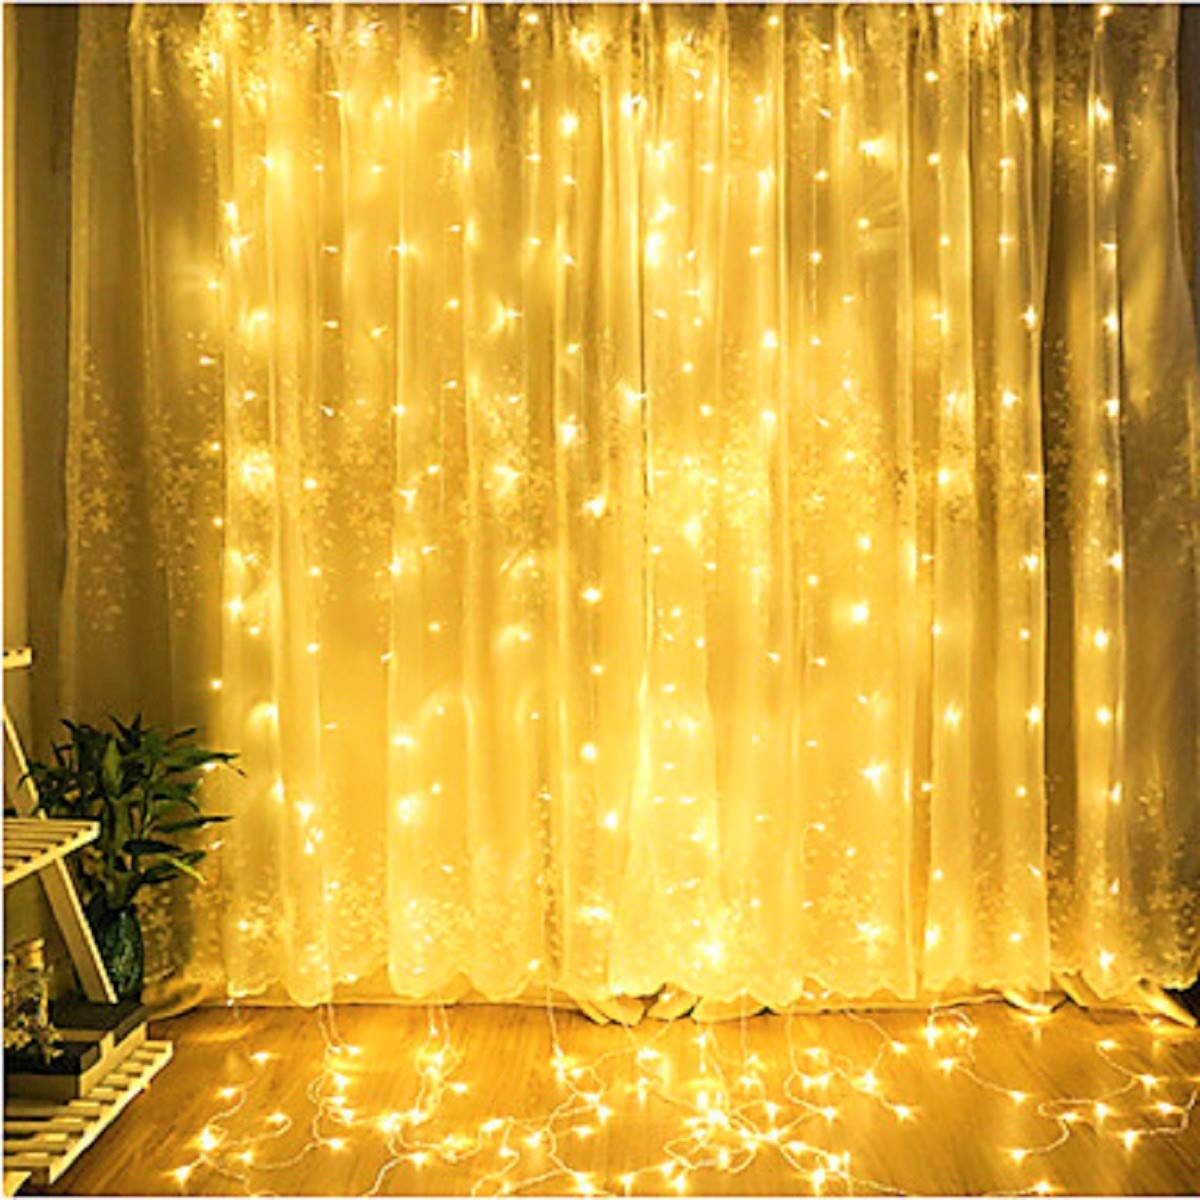 Alvinker New-Type Waterproof LED Window Curtain String Lights with Remote&Timer, for Garden, Bedroom, Wedding, Party Decorations. Outdoor/Indoor Use. UL FCC CE and RoHS Certified(Warm White) by Alvinker (Image #1)